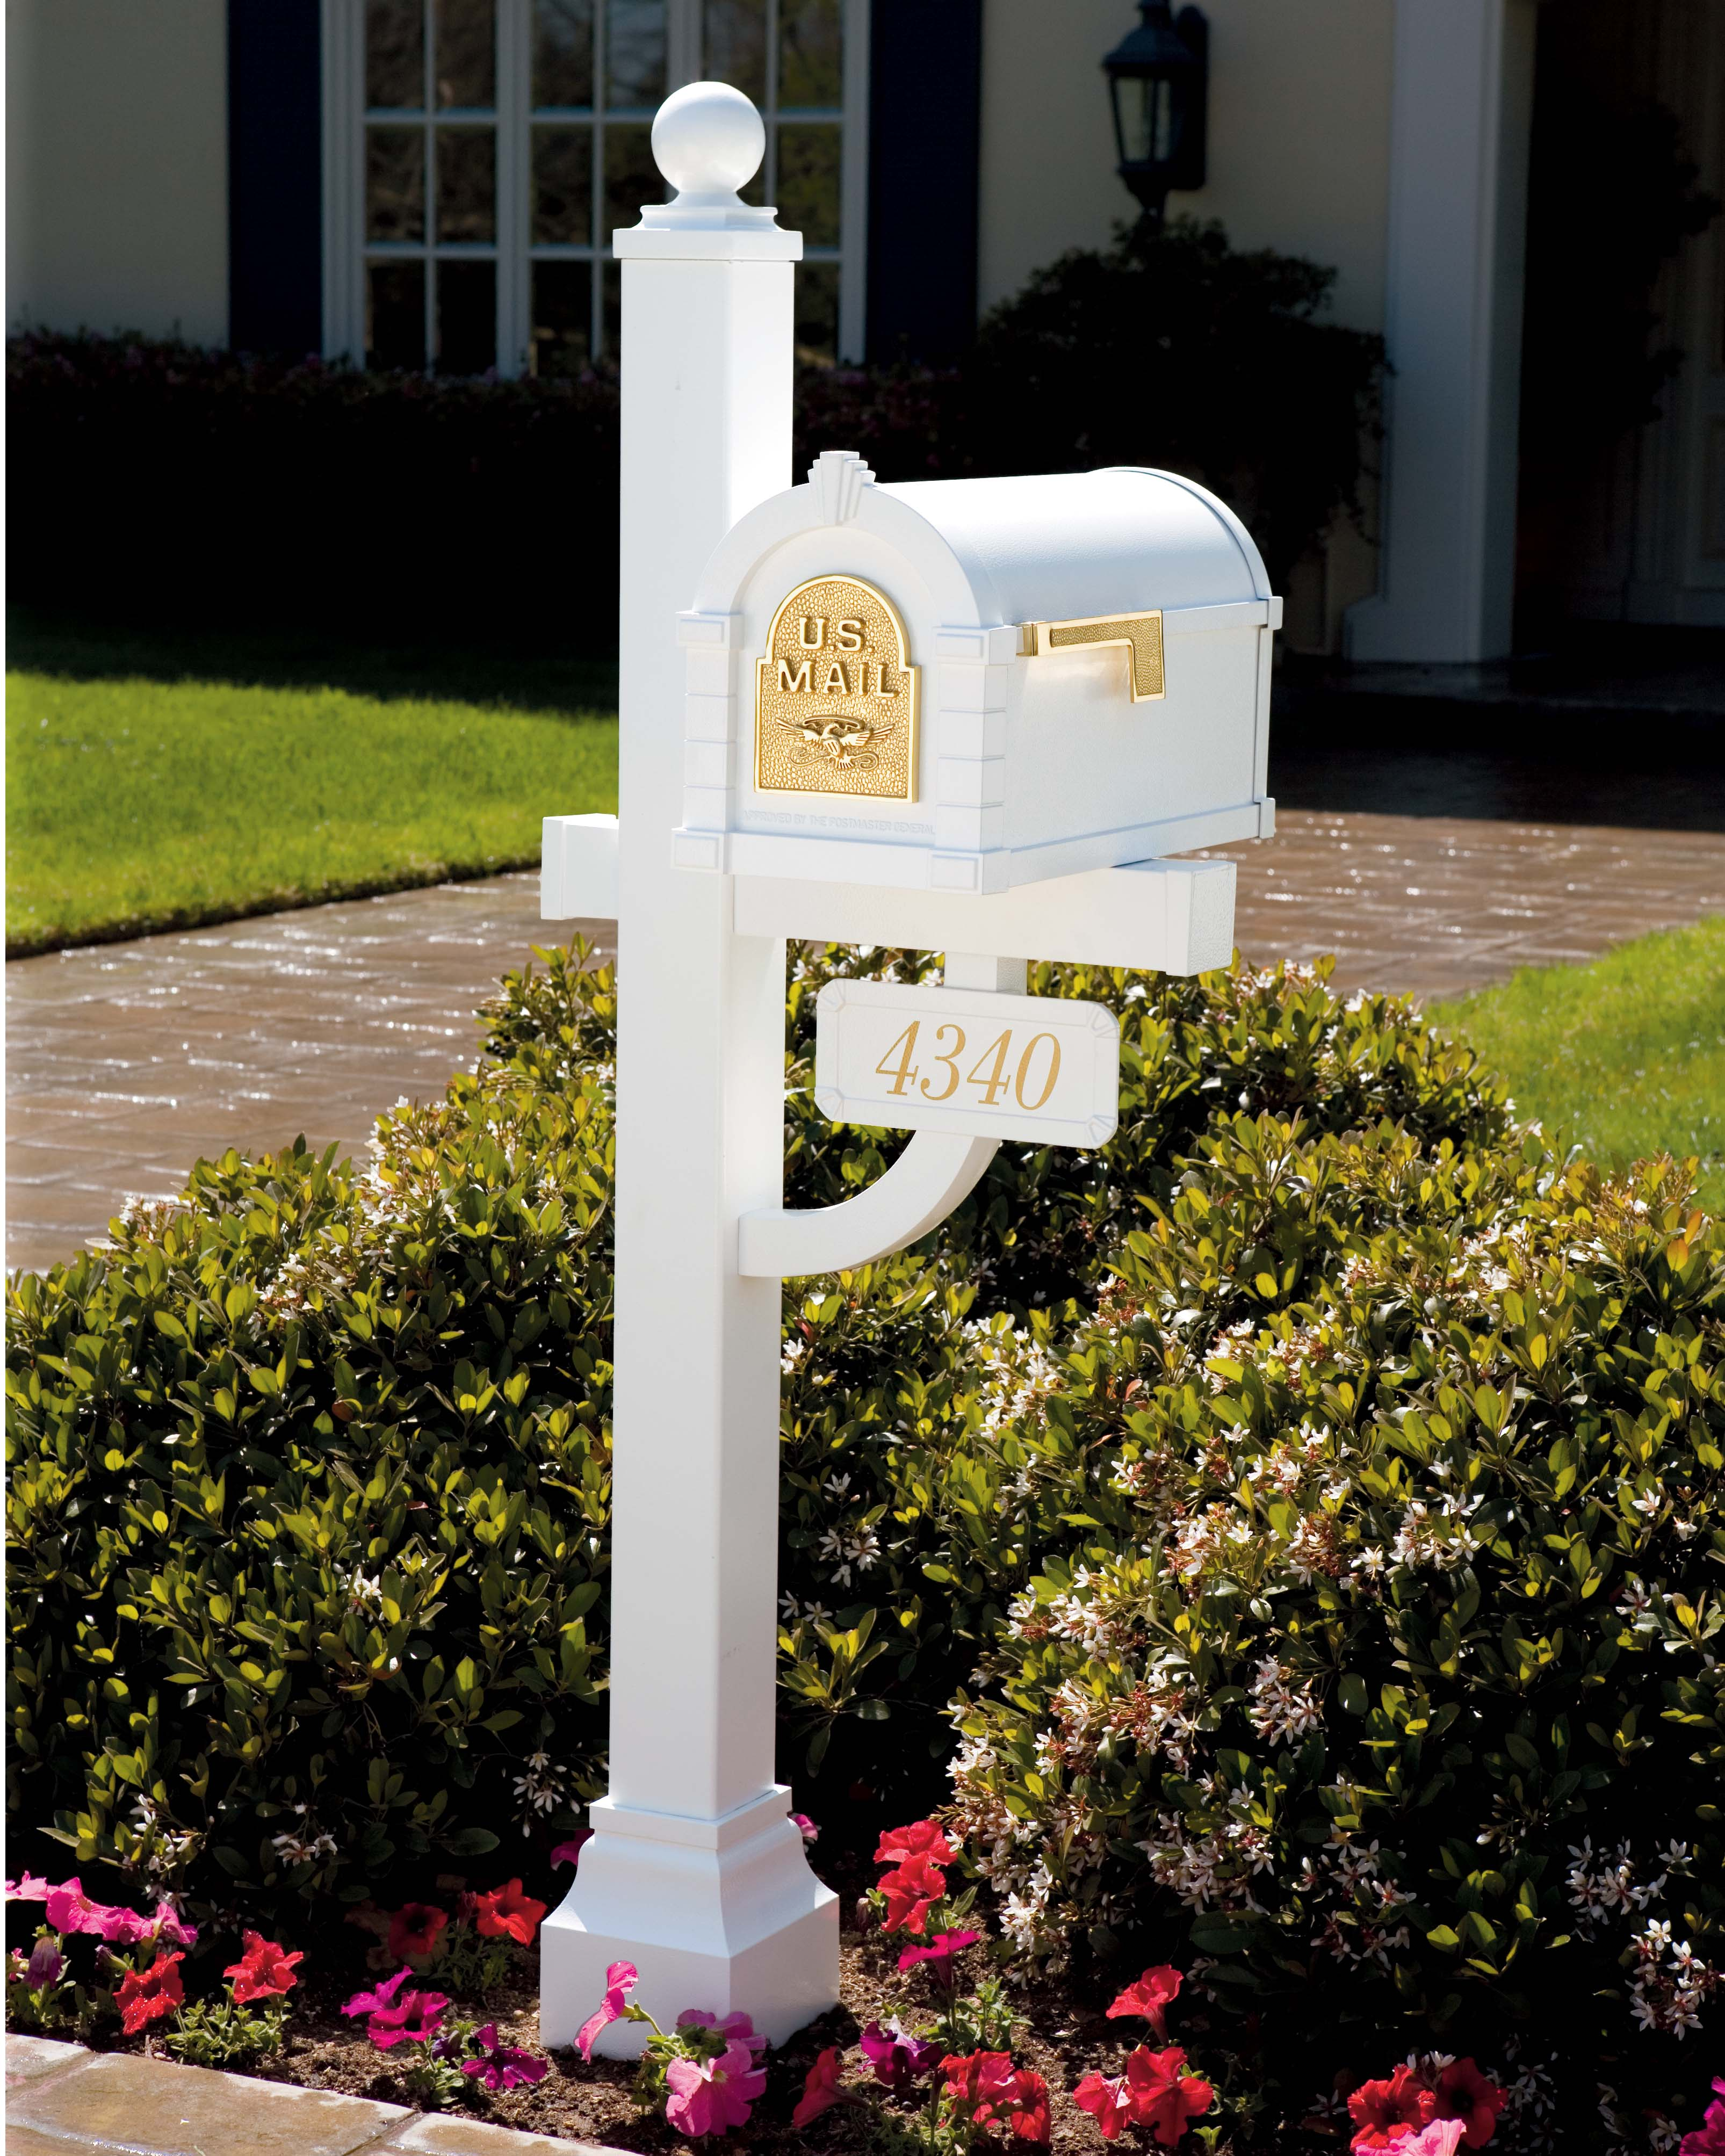 Gaines Keystone Mailboxes and Posts